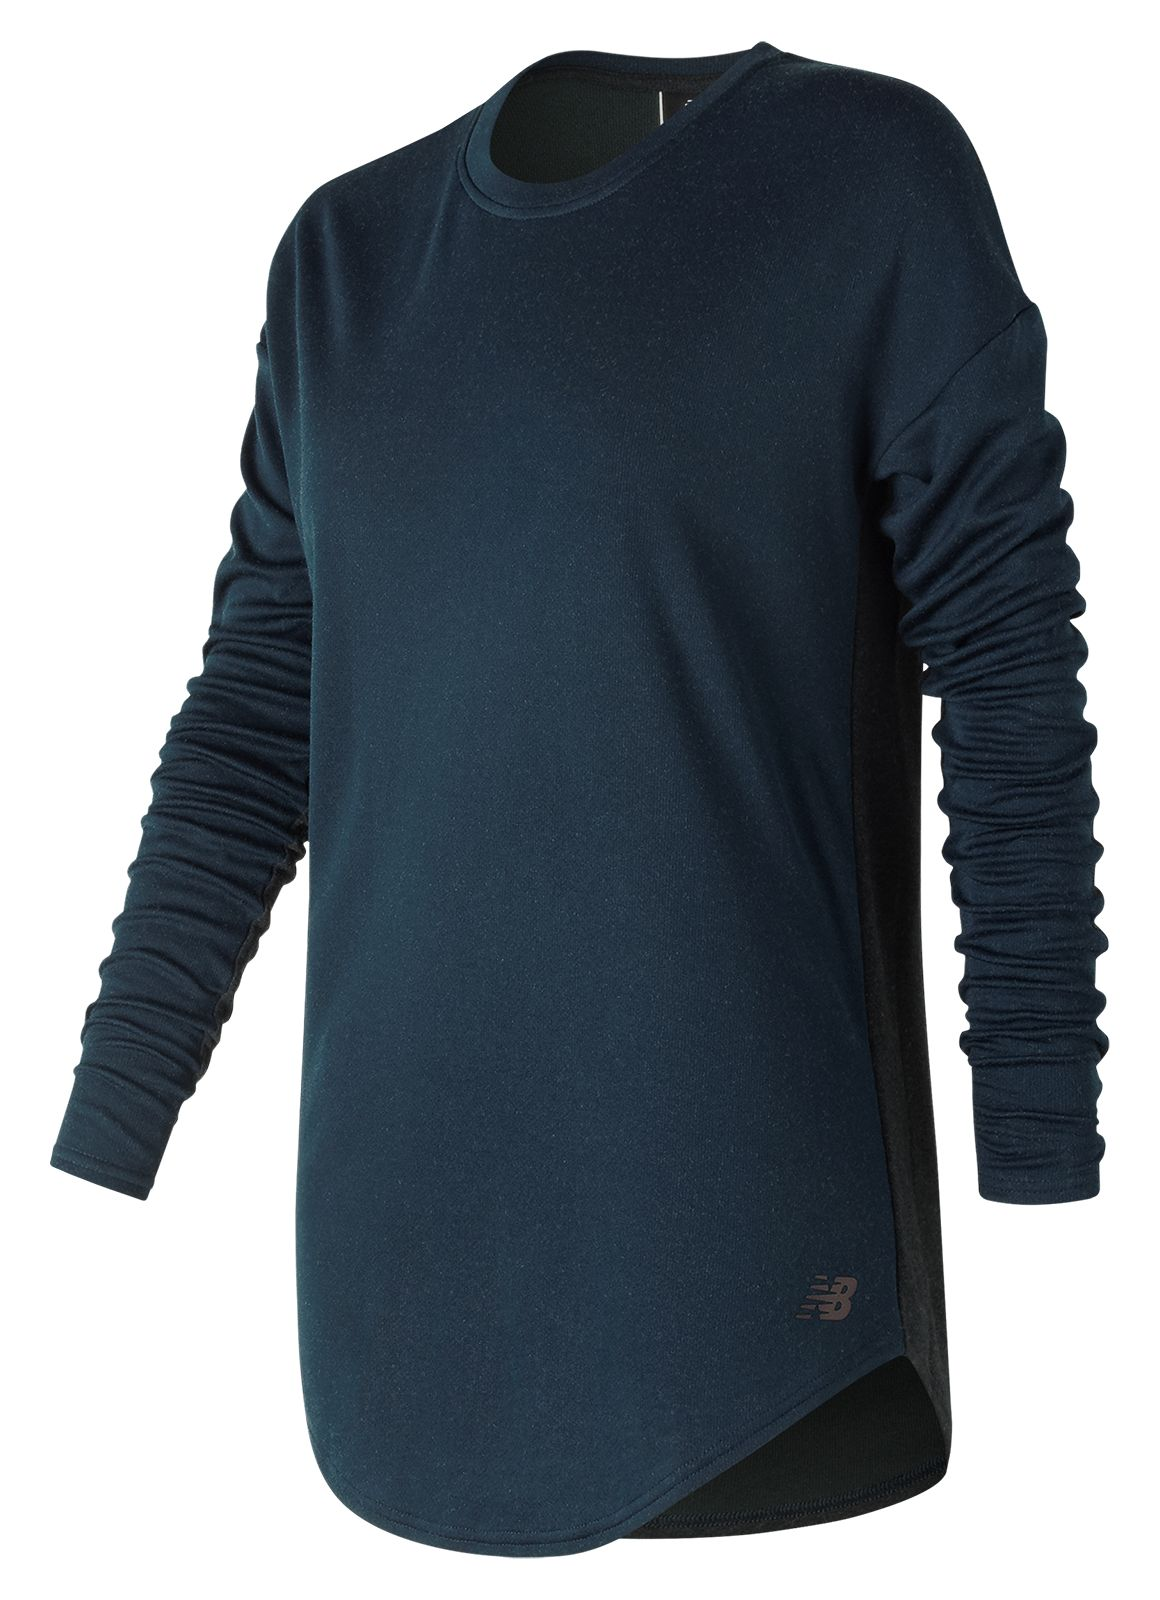 247 Luxe Long Sleeve